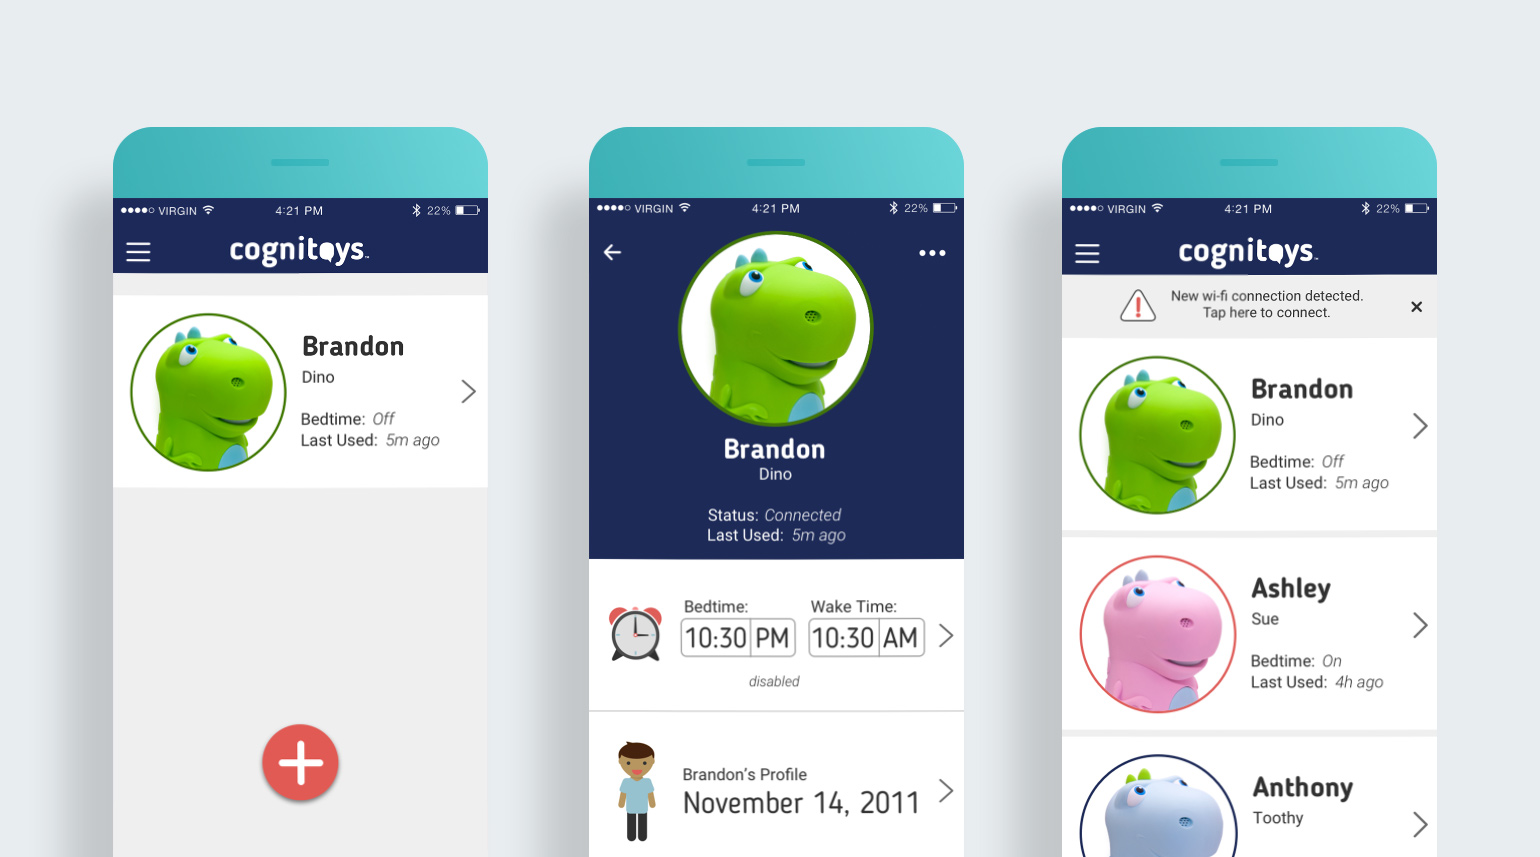 Mobile app user interface for onboarding a new toy and managing profile information.